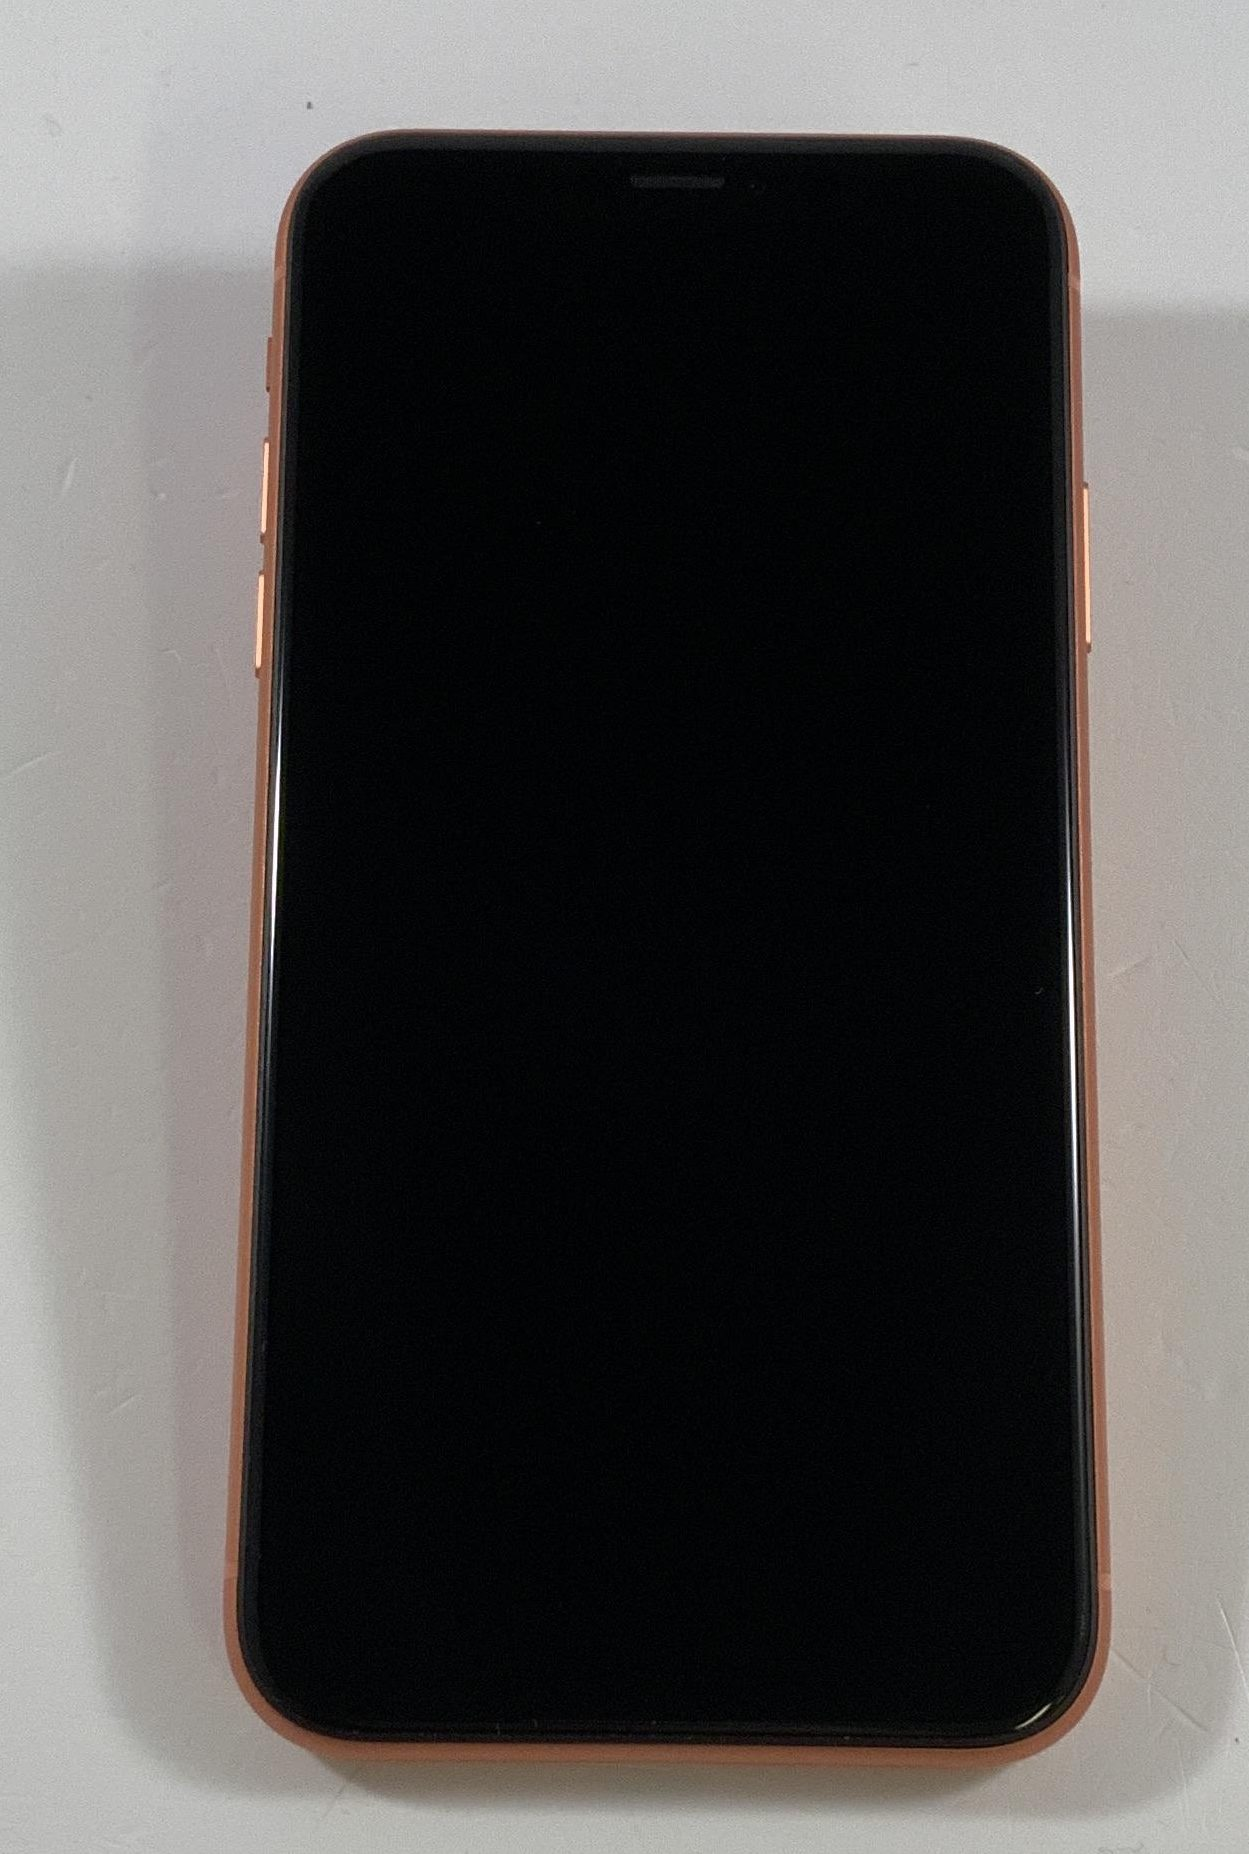 iPhone XR 64GB, 64GB, Coral, image 1